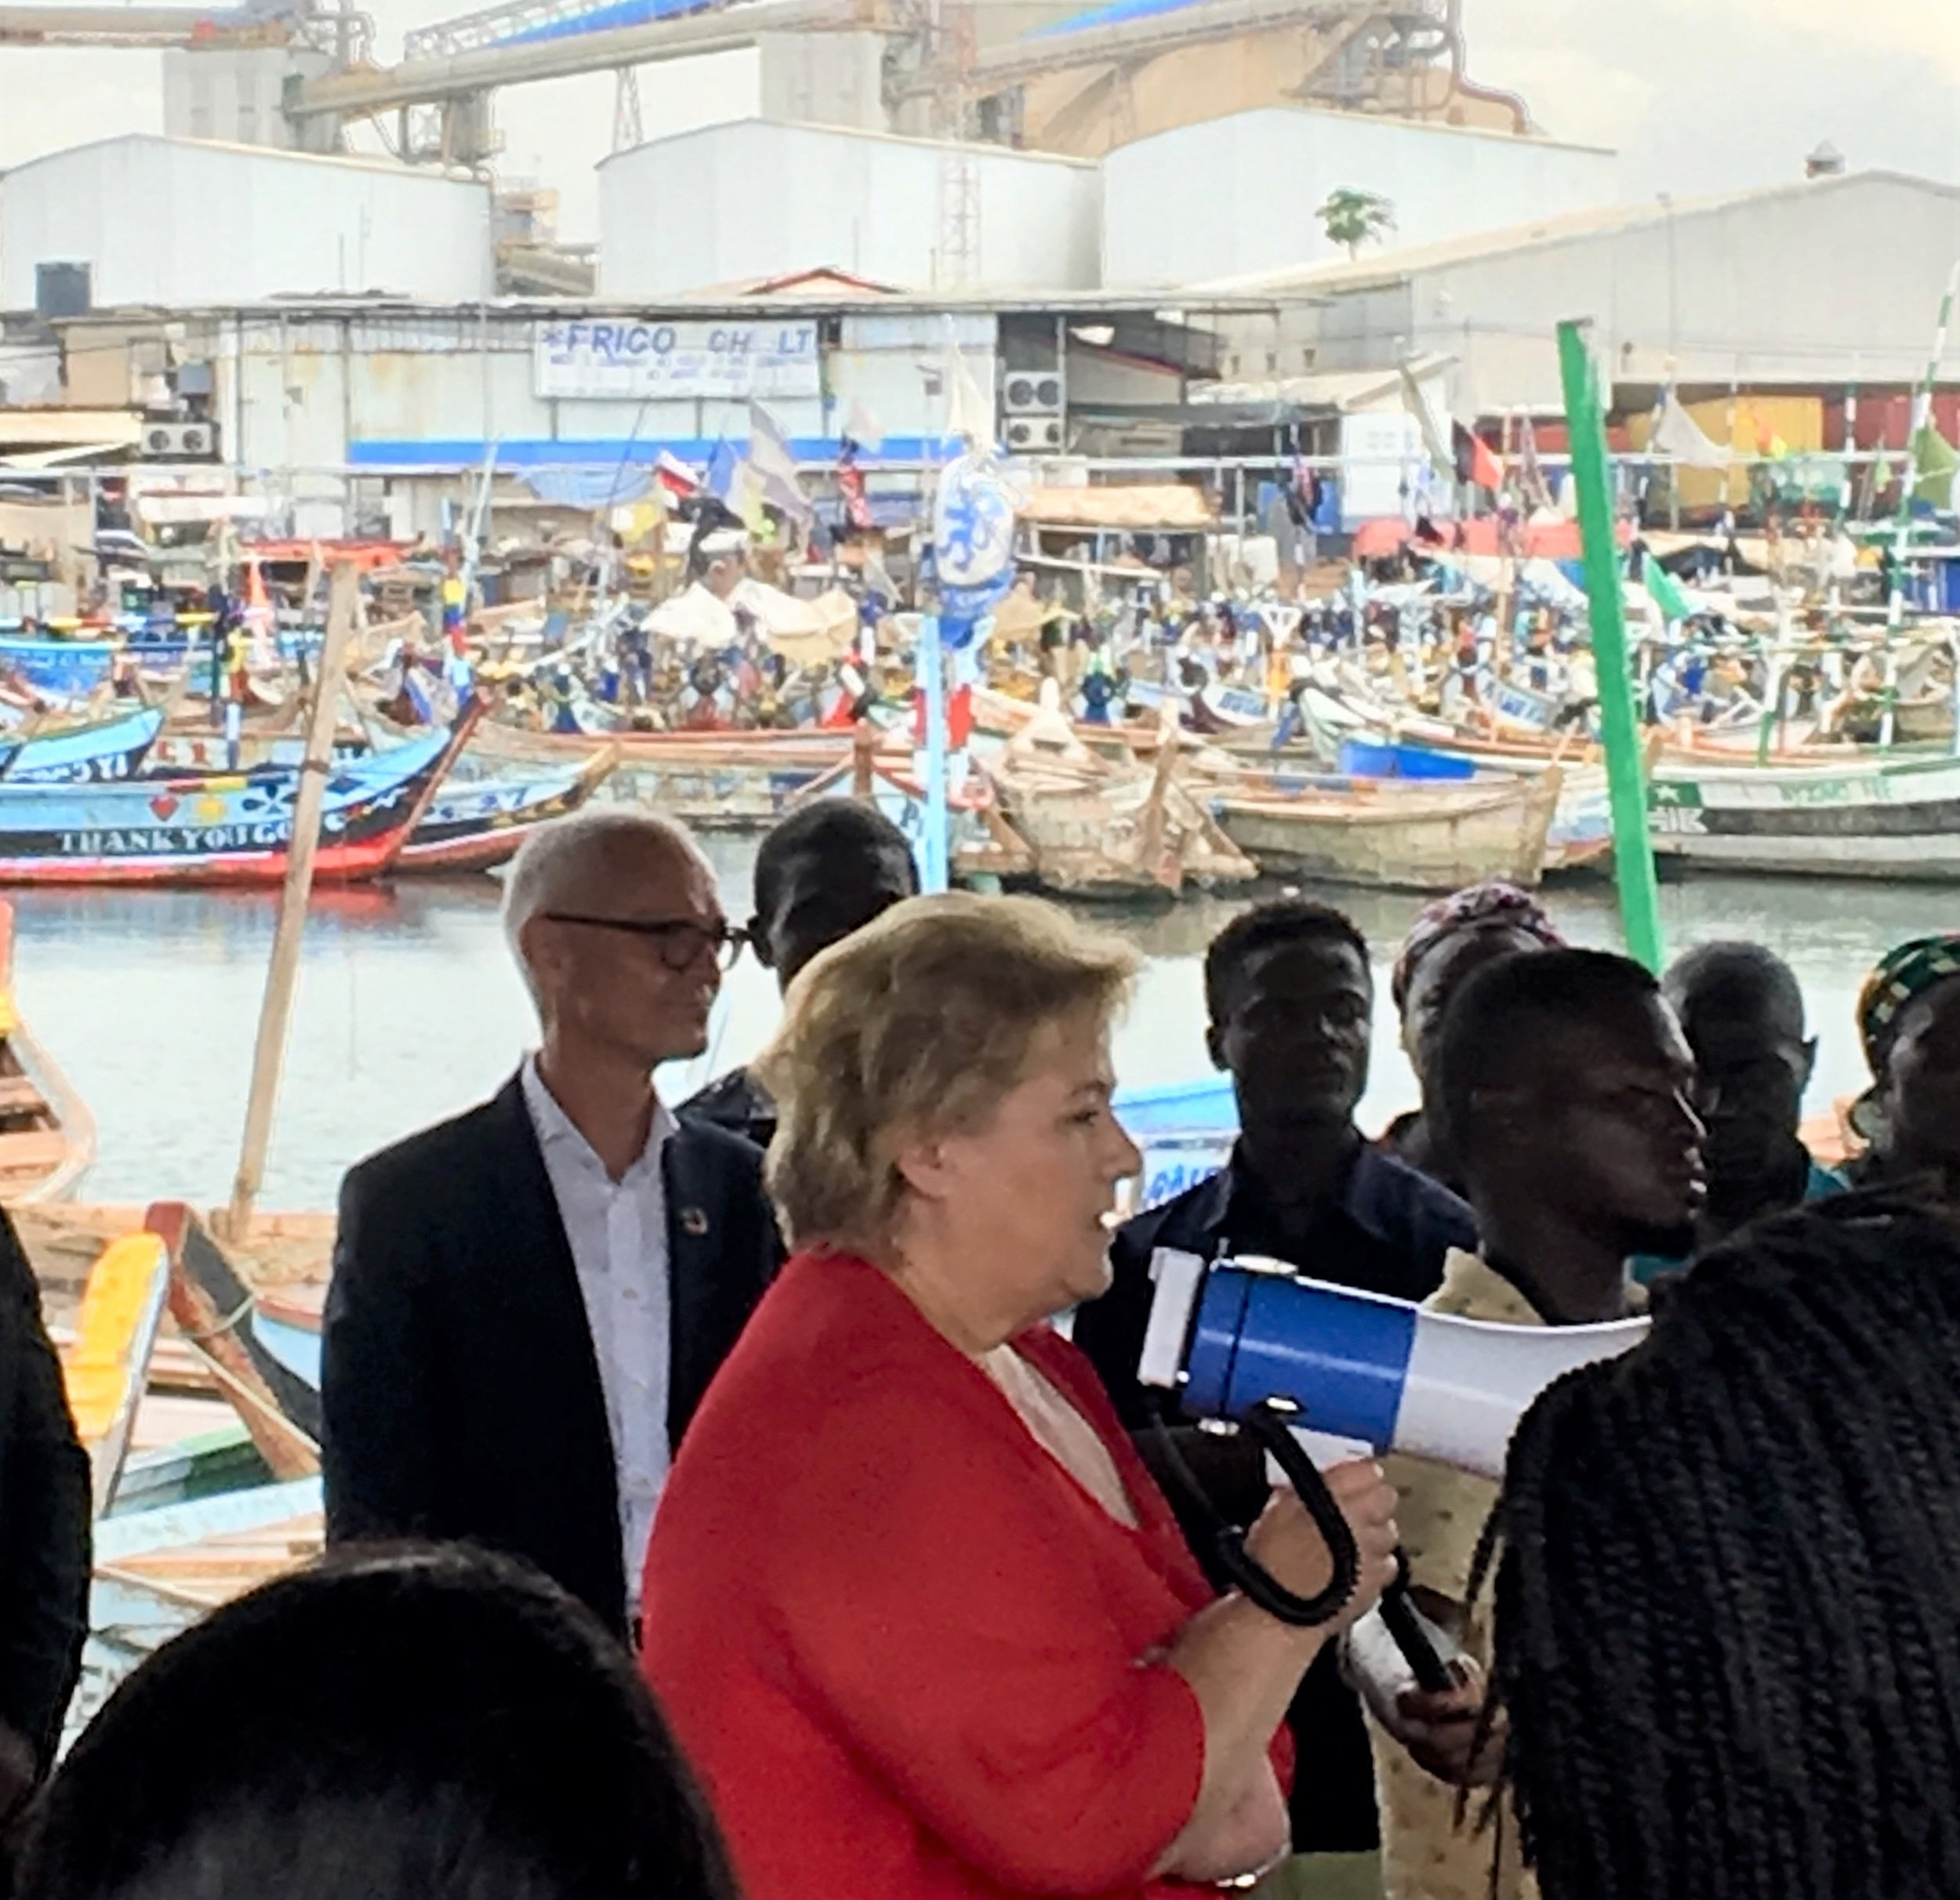 PM Solberg talks about fishing and sustainable livelihood at a fishmarket in Tema.